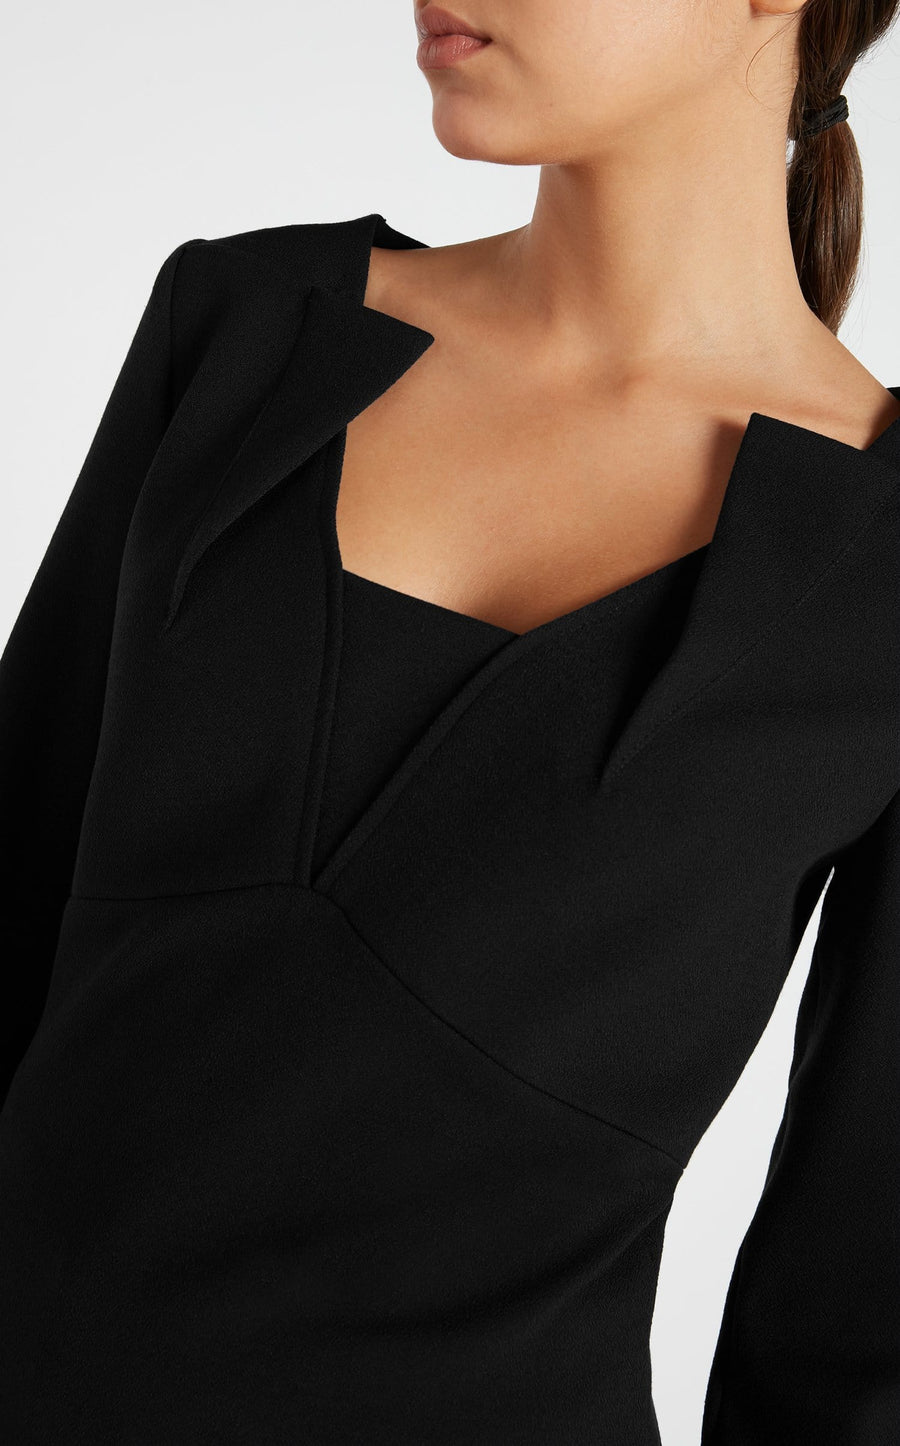 Strand Top In Black from Roland Mouret